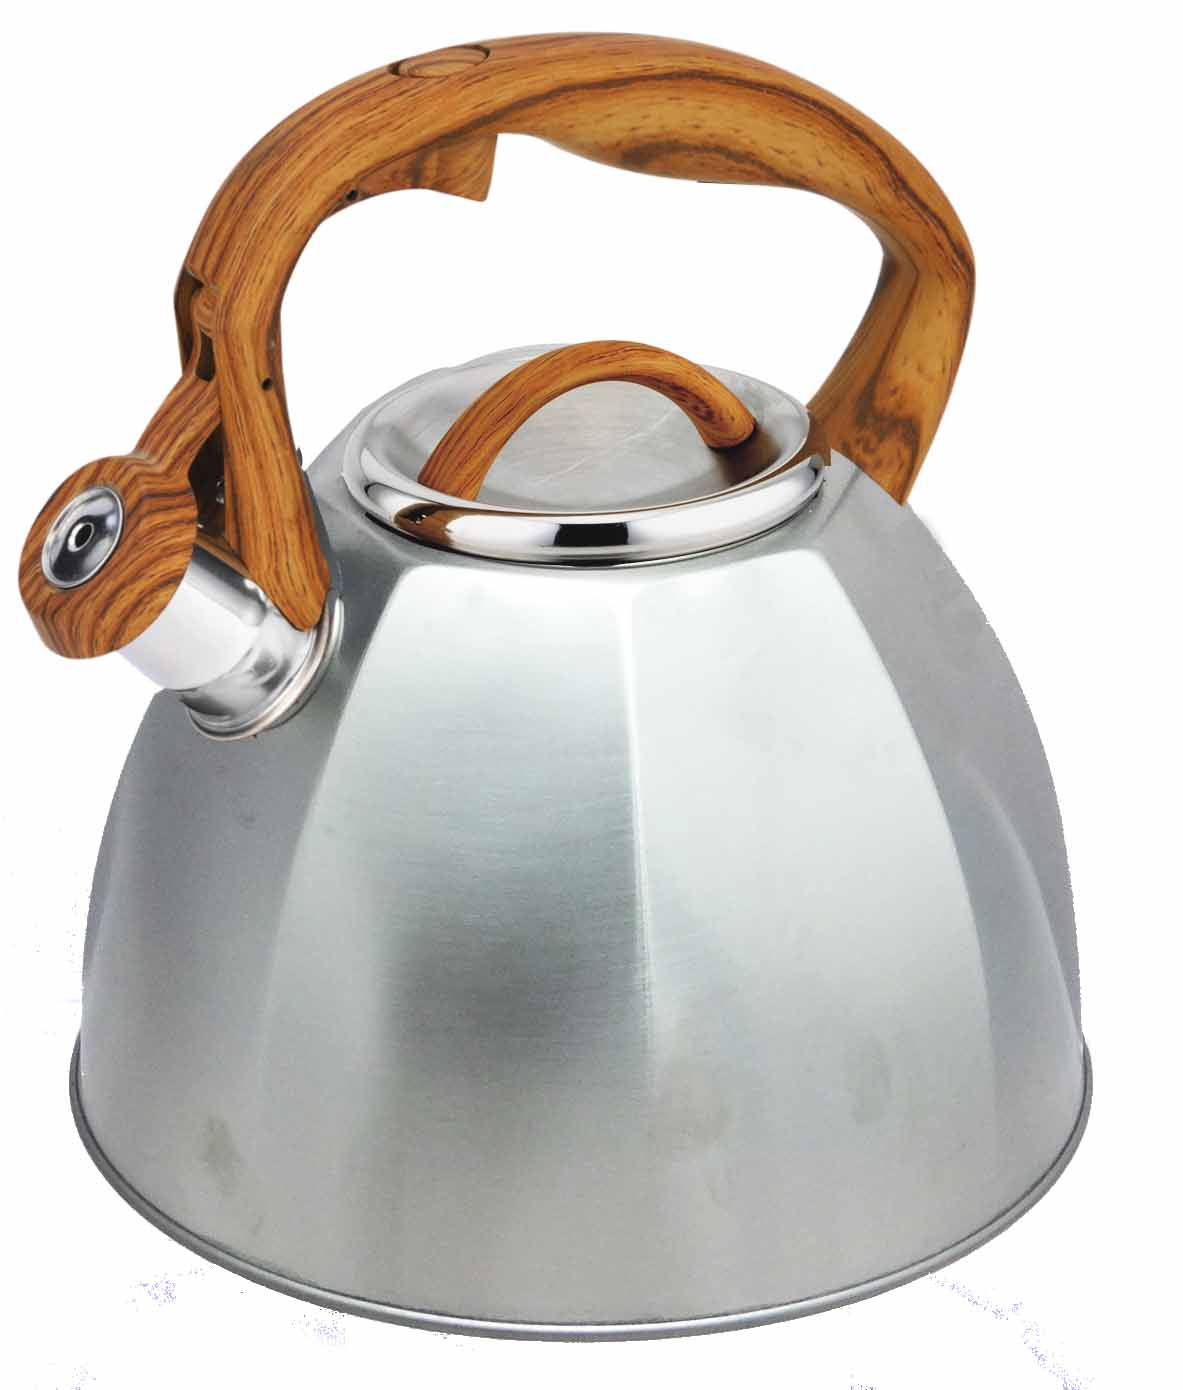 Wooden rubber coating whistling kettle